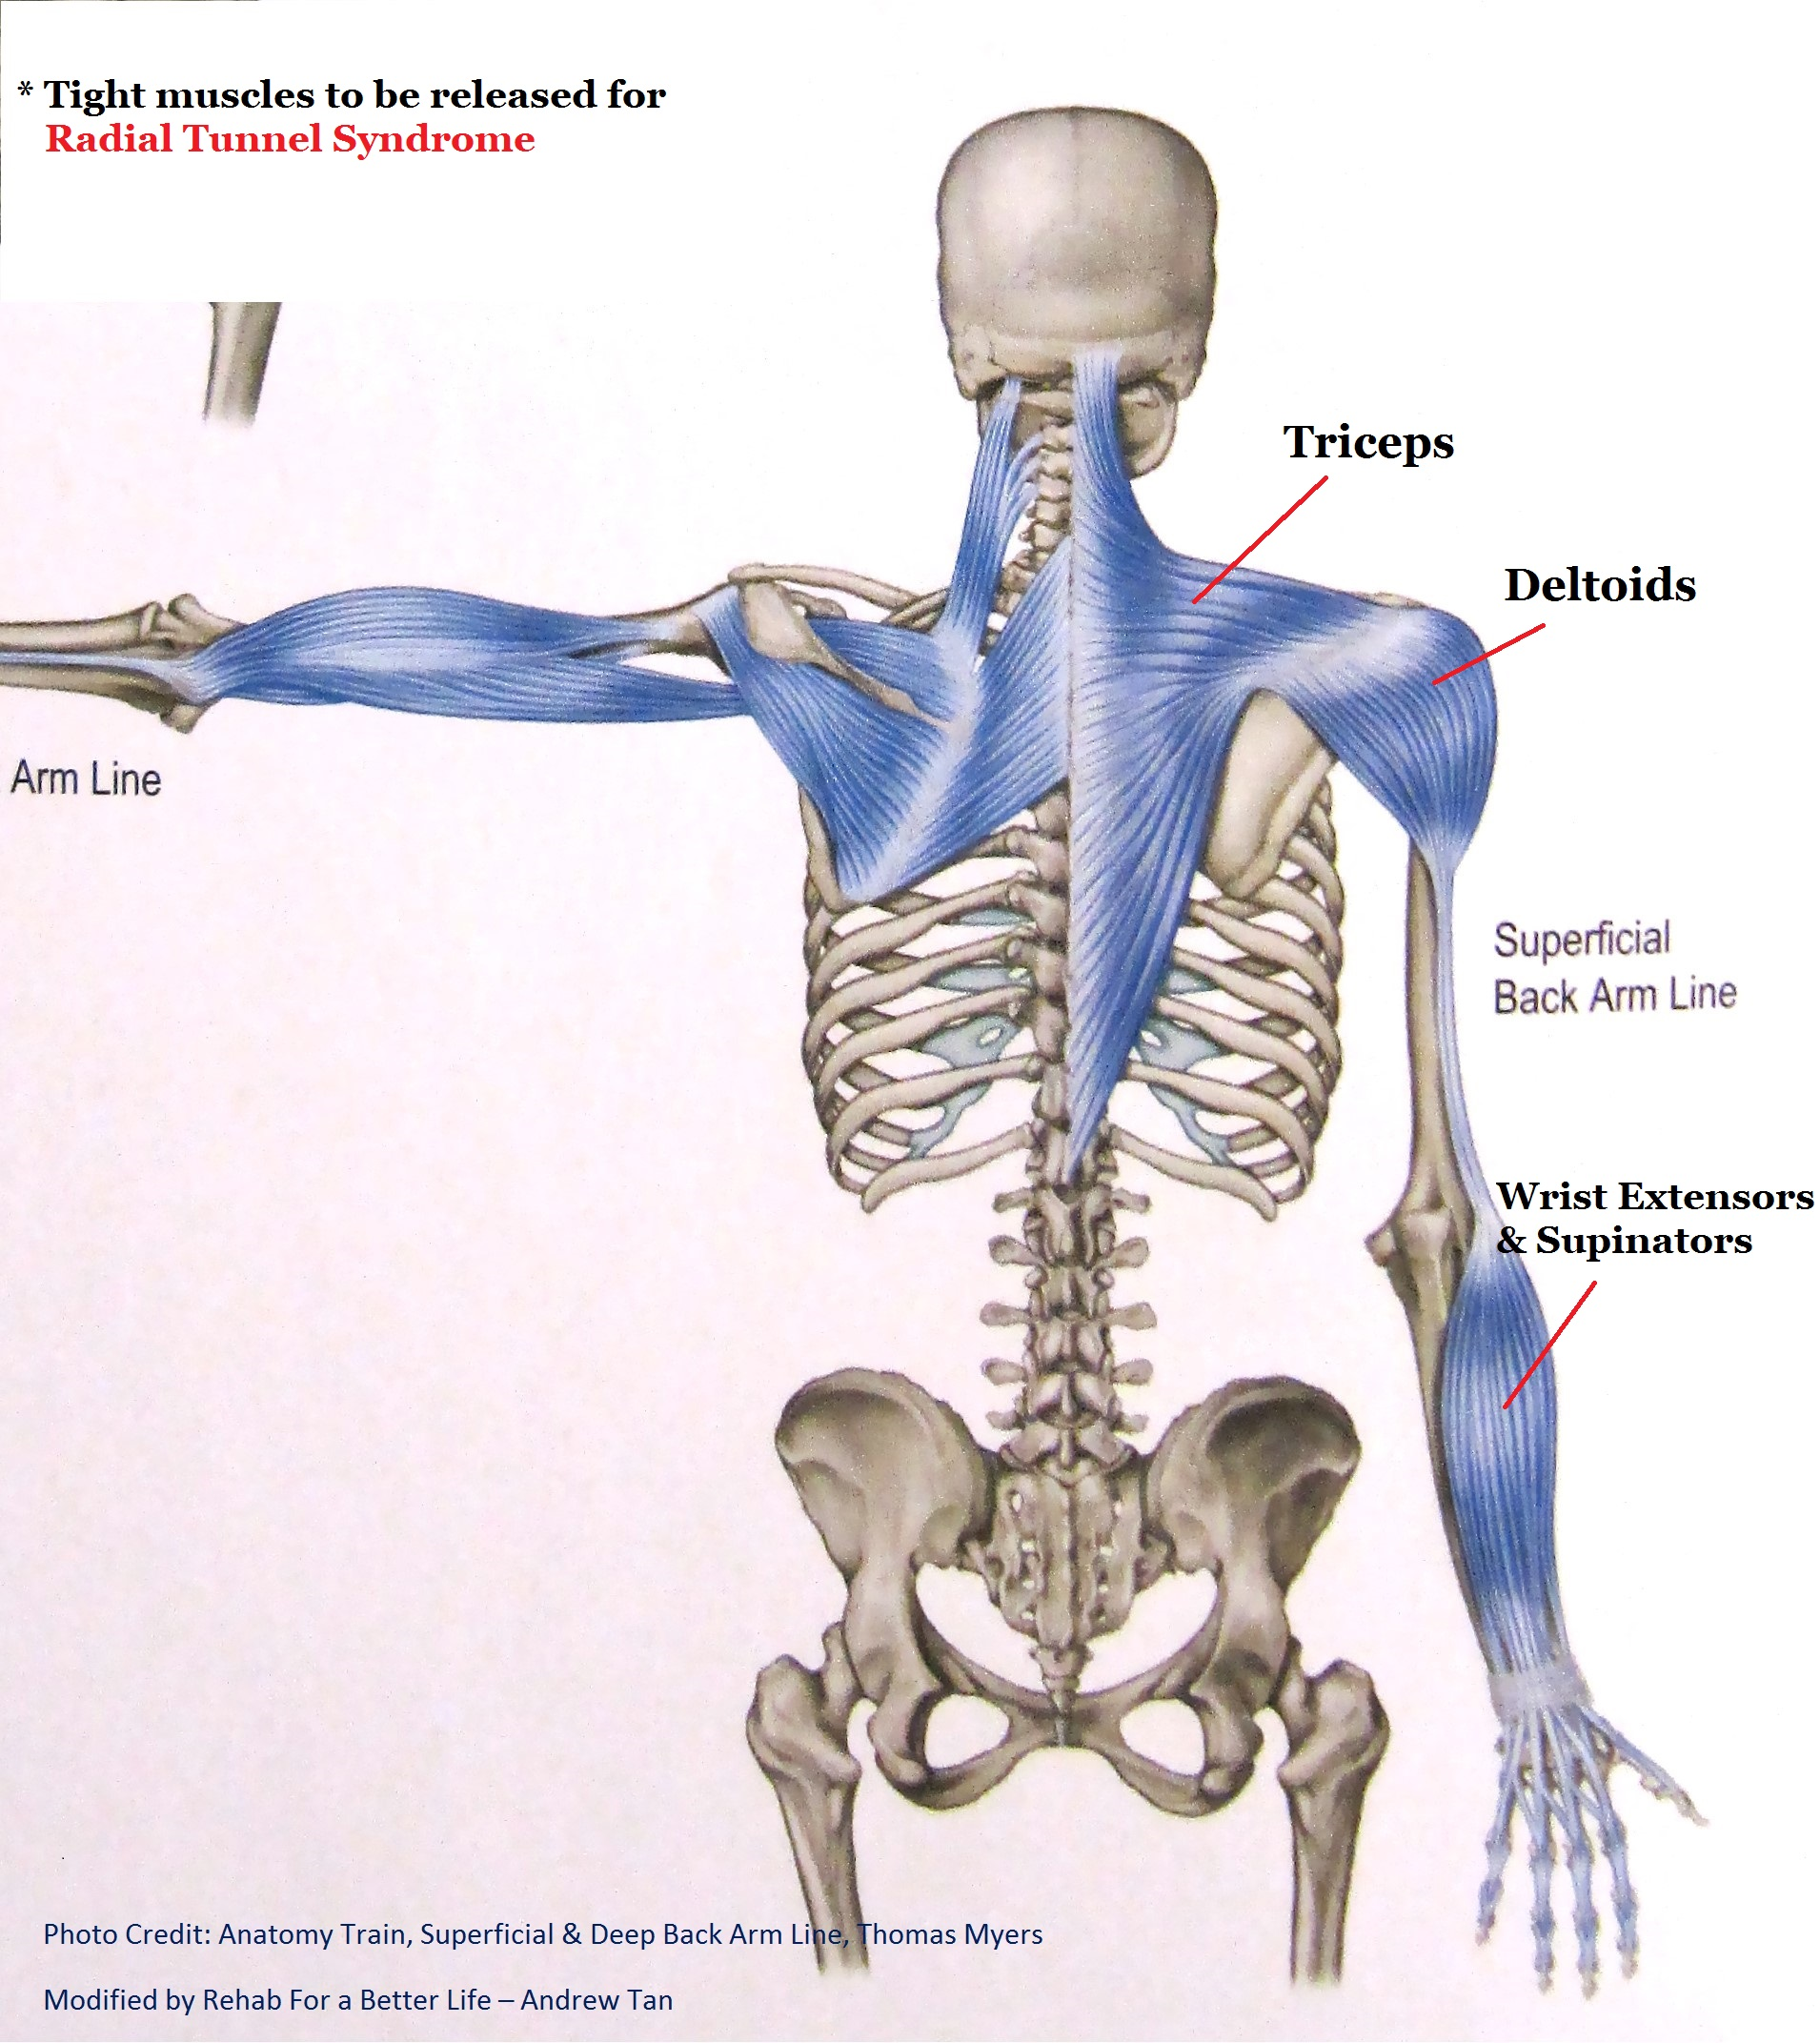 Superficial and Deep Back Arm Lines